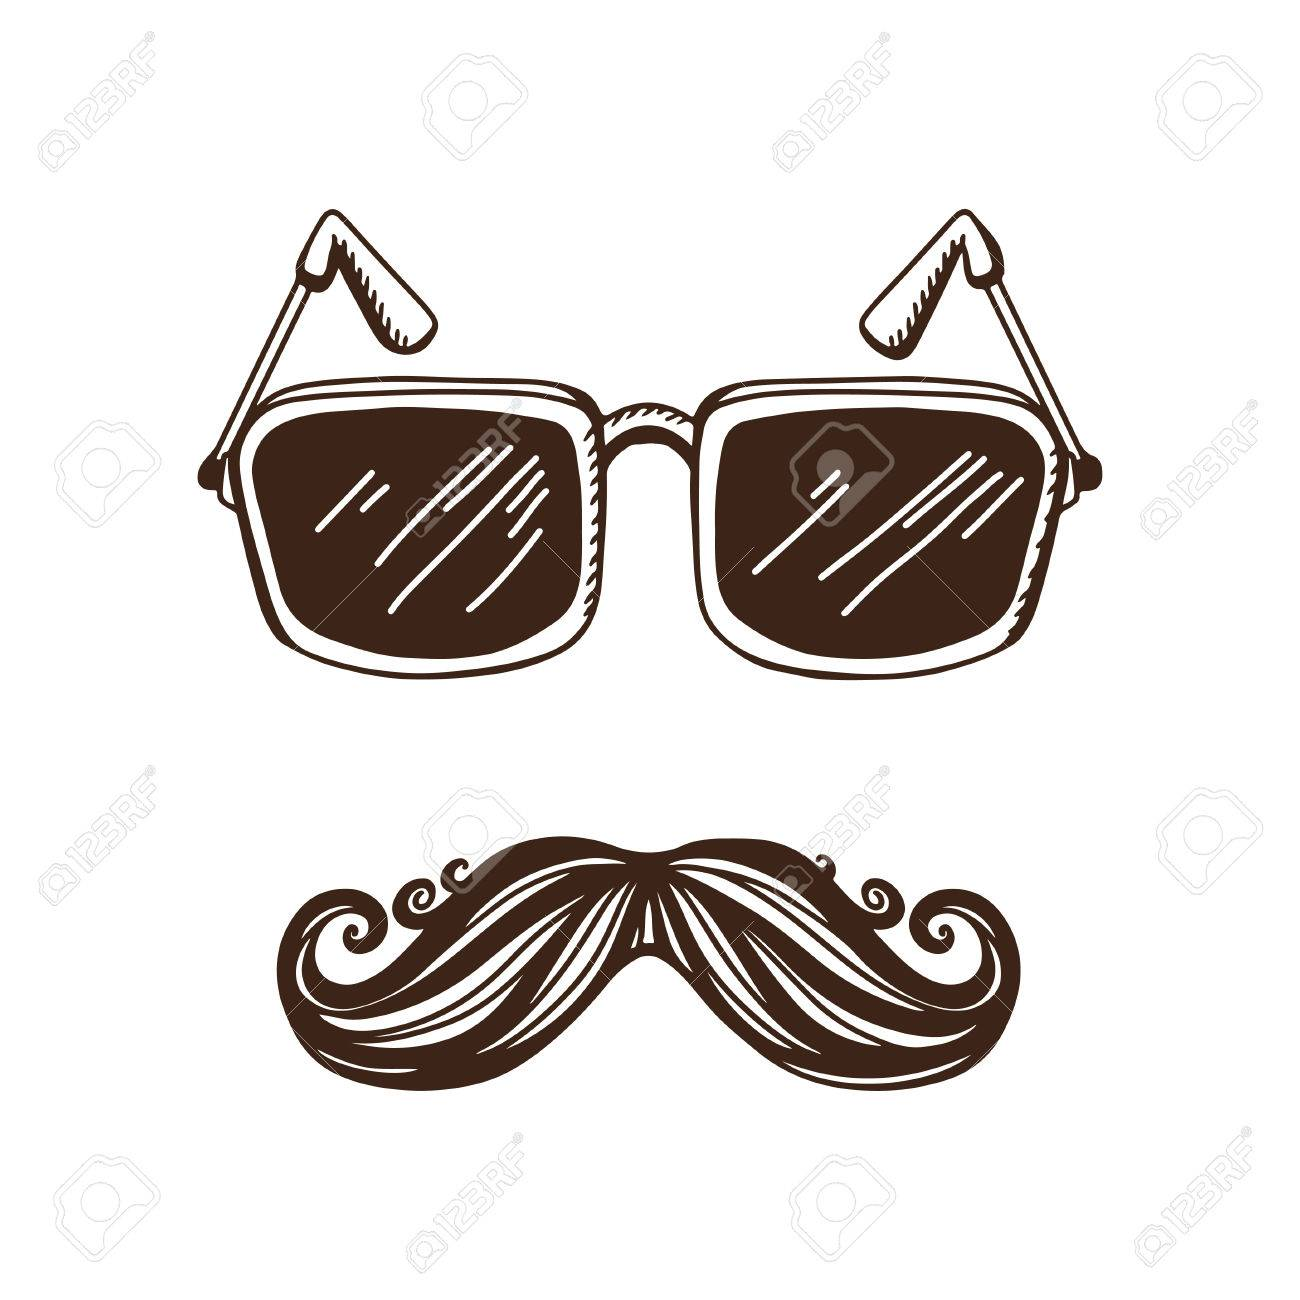 7ea905b0a Vector - Vintage hipster background with a mustache and glasses - vector